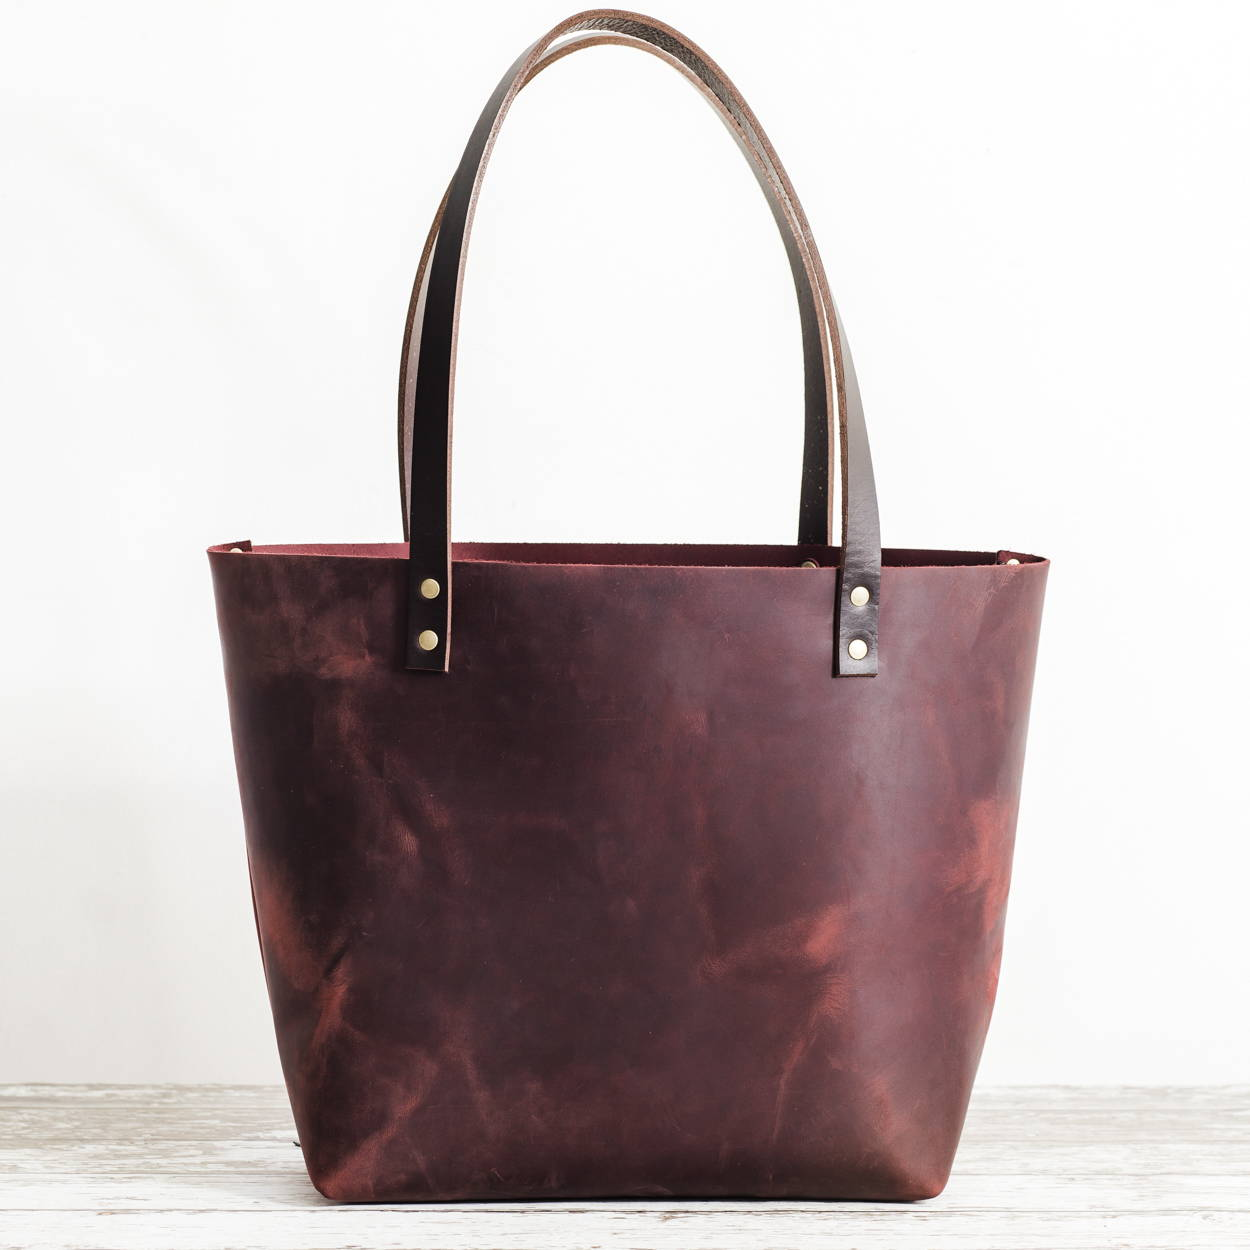 Merlot Zipper Tote with Dark Handles